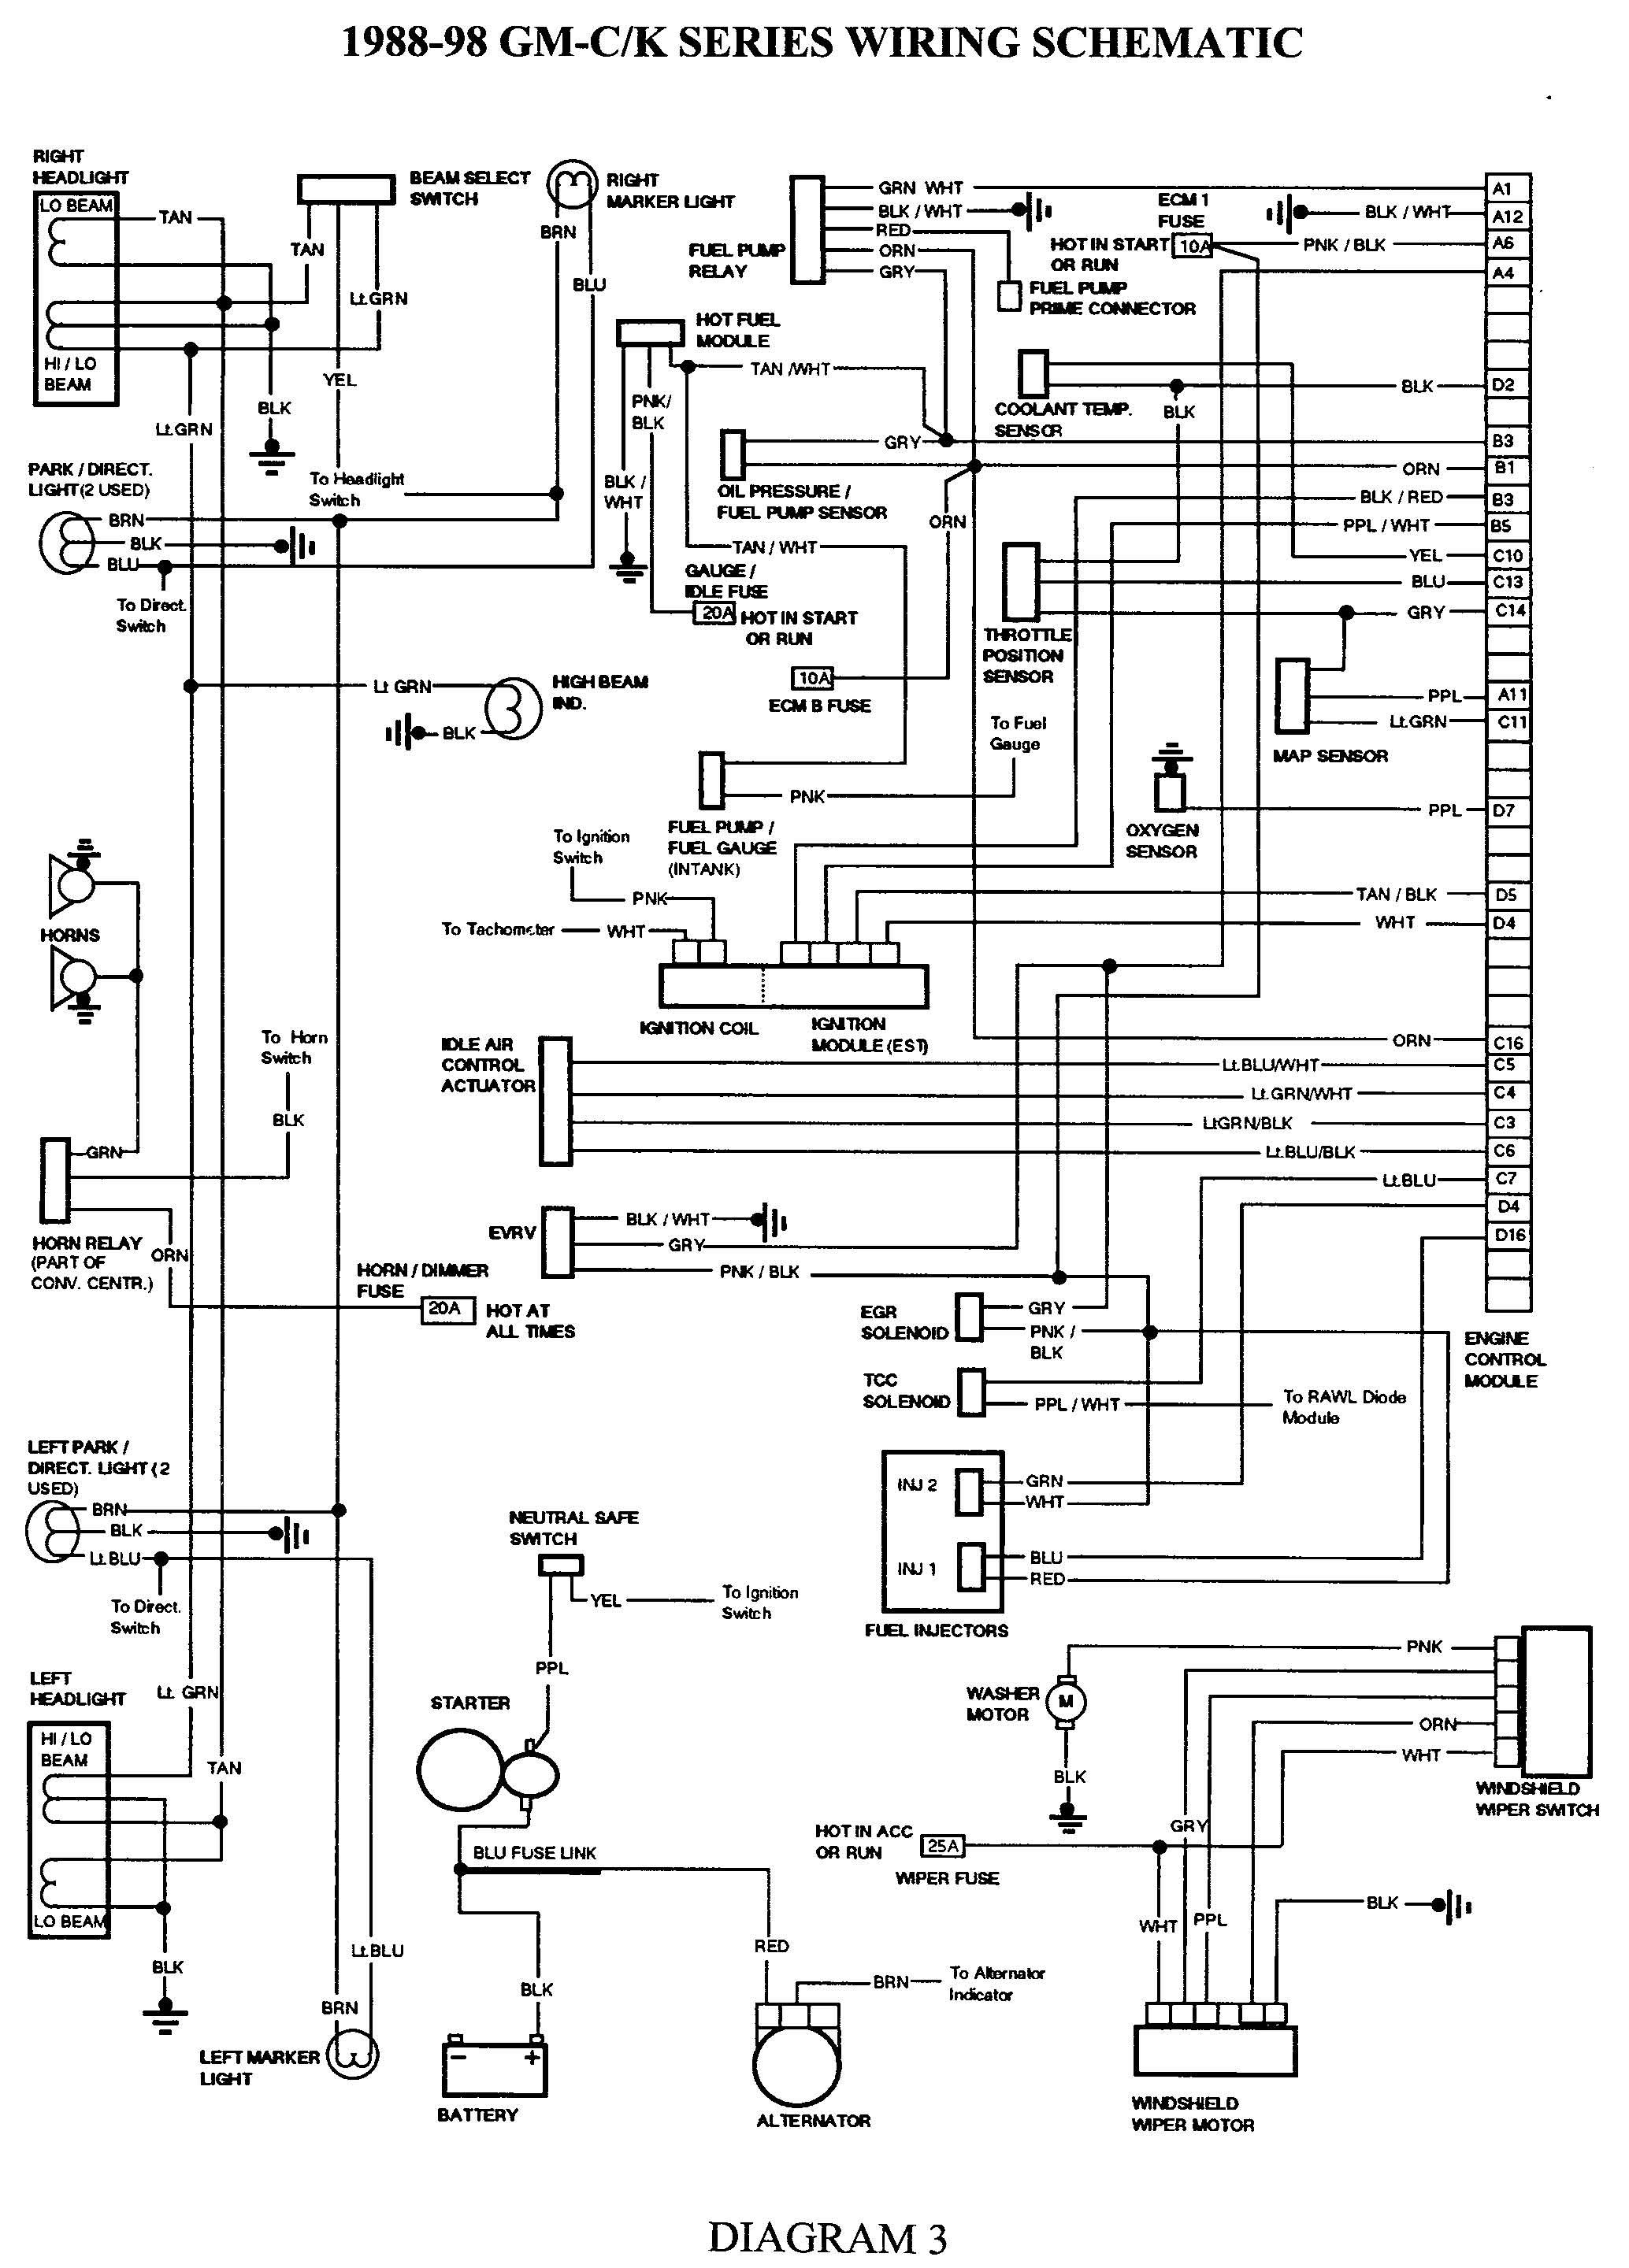 gmc truck wiring diagrams on gm wiring harness diagram 88 98 kc 98 grand am wiring diagram car forums and automotive chat [ 2068 x 2880 Pixel ]